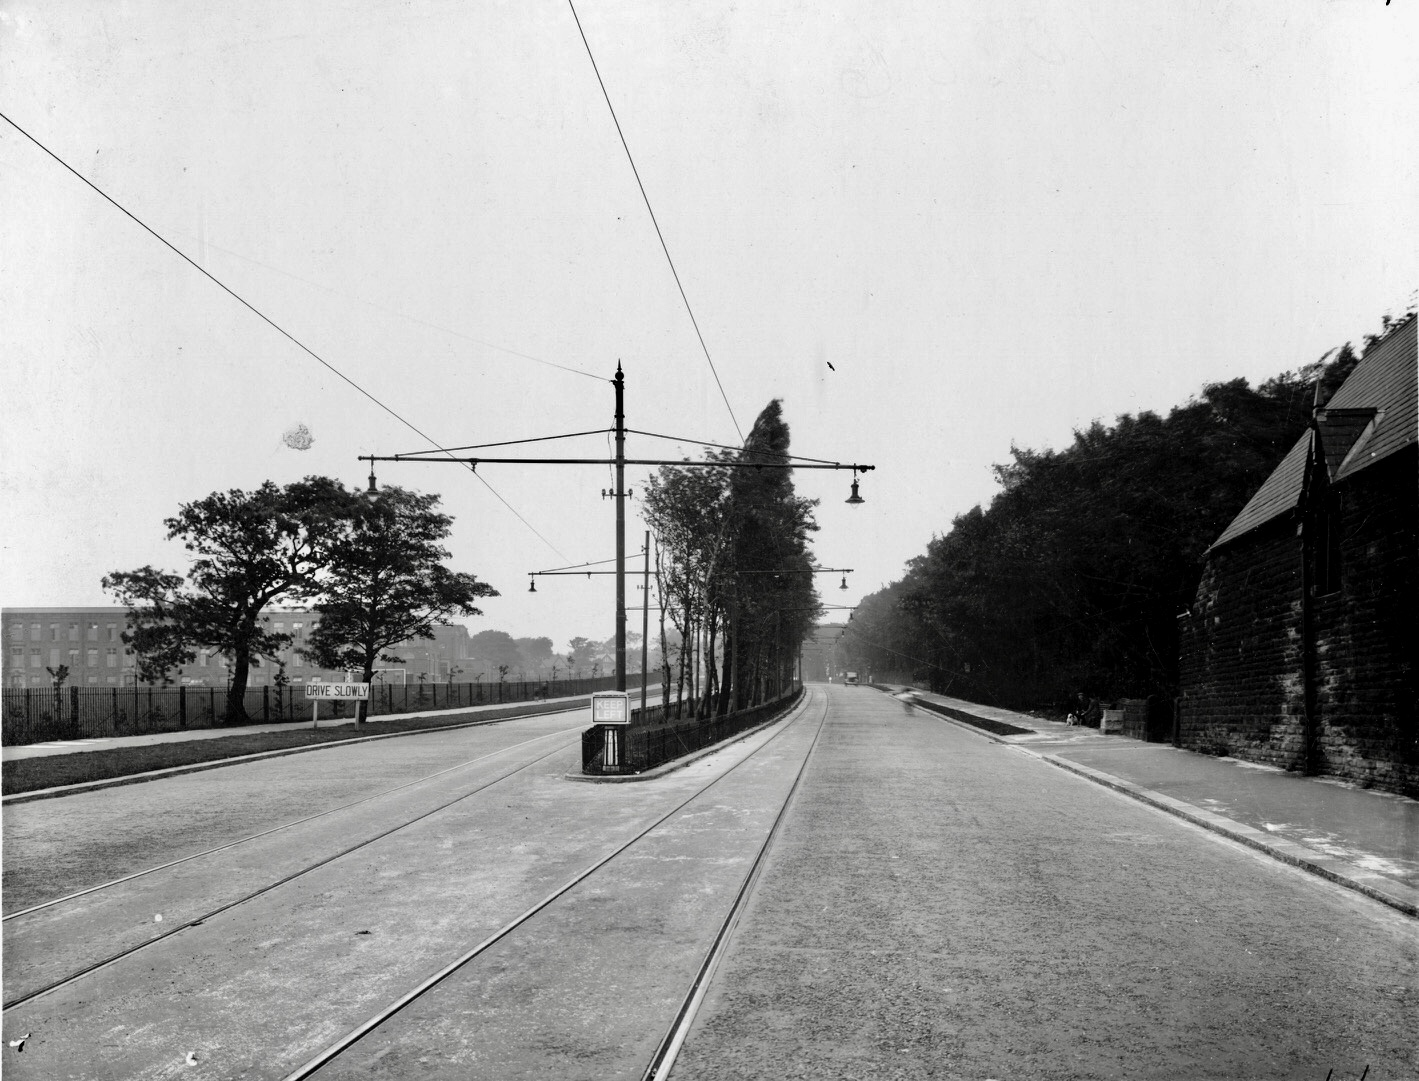 Otley Road and Lawnswood School